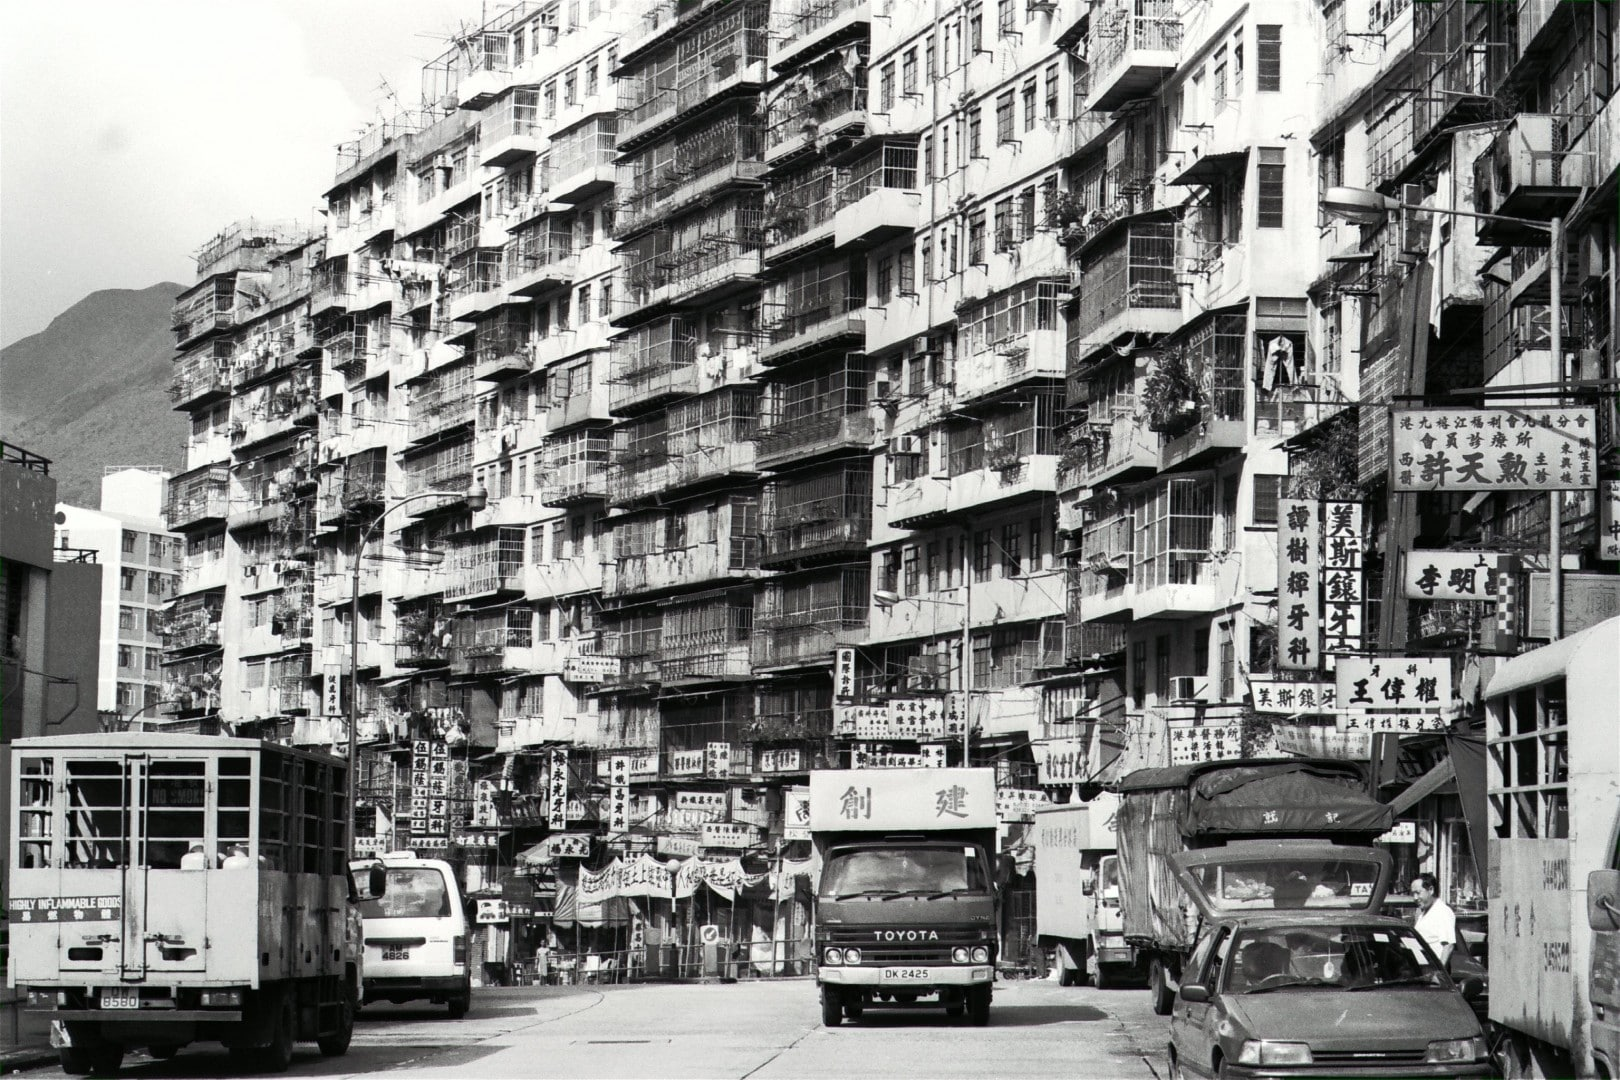 Kowloon Walled City - Old Residential Building - SCMP.com